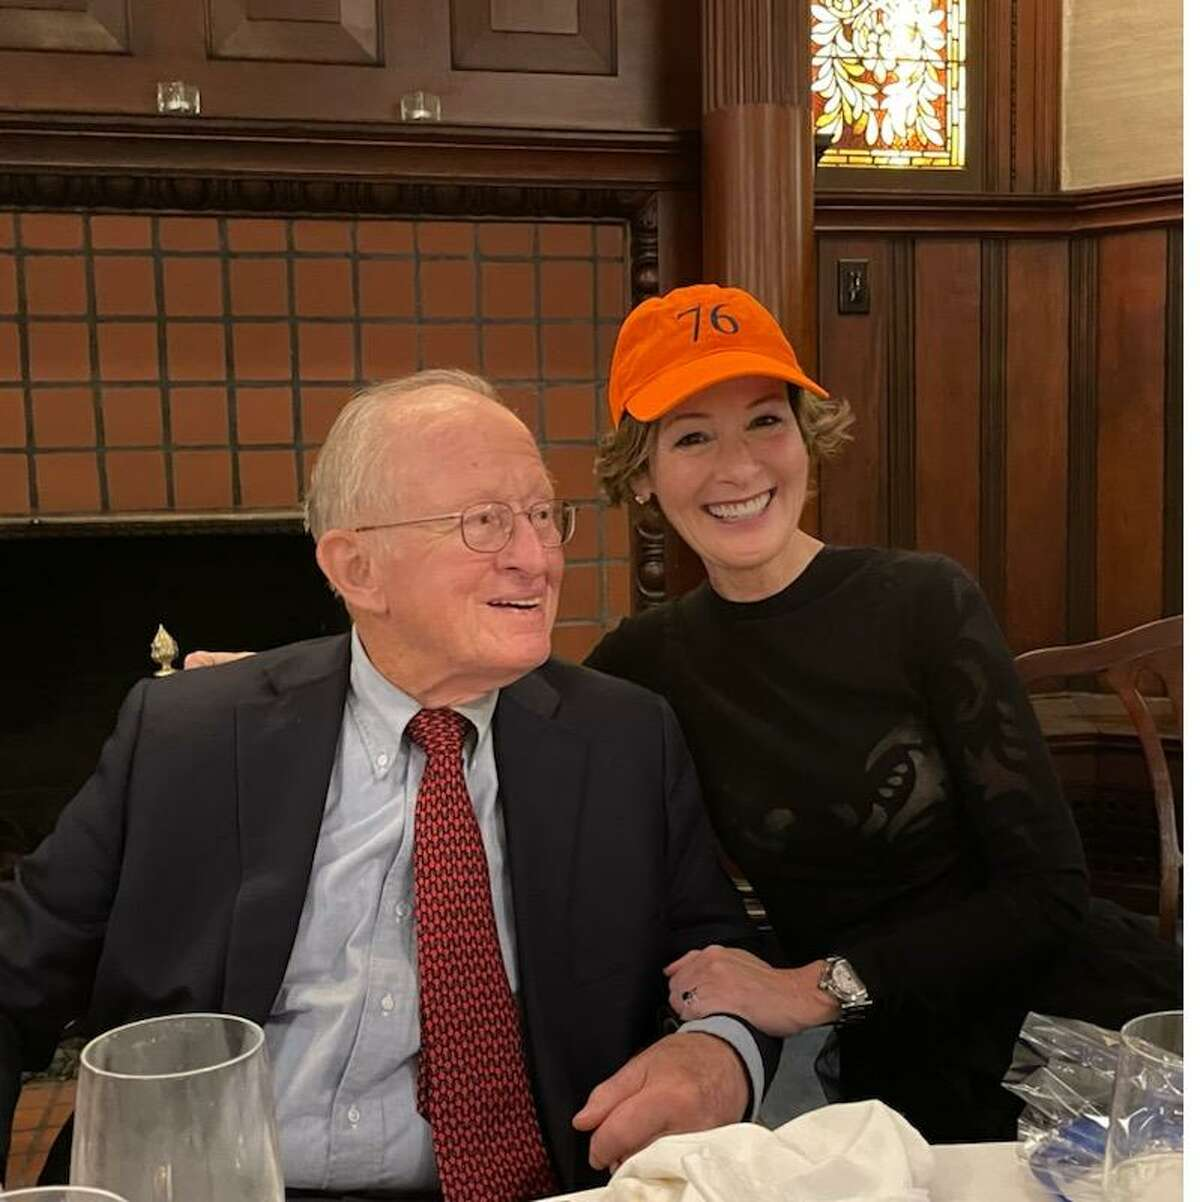 Shannon Older celebrates with her father, Dr. Thomas Older, after being elected the 76th president and first female to hold the position at the Fort Orange Club, founded in 1880. Her father, a retired heart surgeon, has been a member since 1972. Shannon Older was elected in November 2020. (Provided photo)